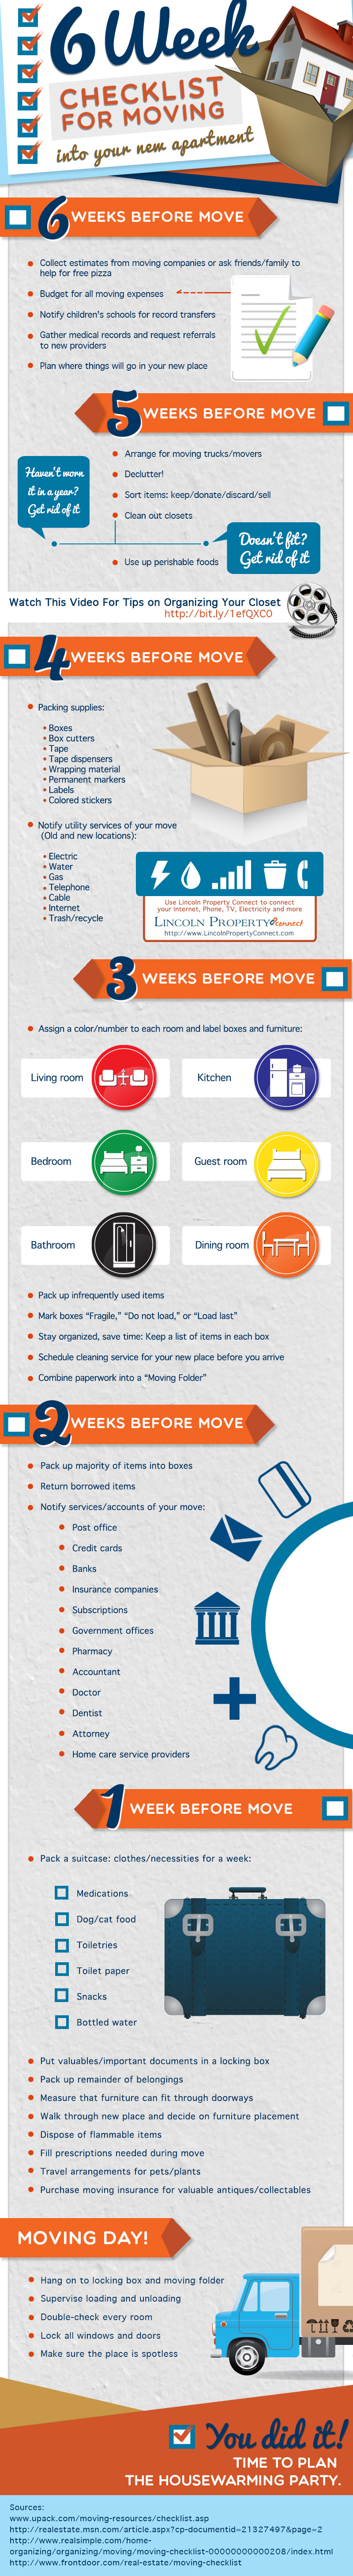 6 Week Checklist For Moving Into Your New Apartment